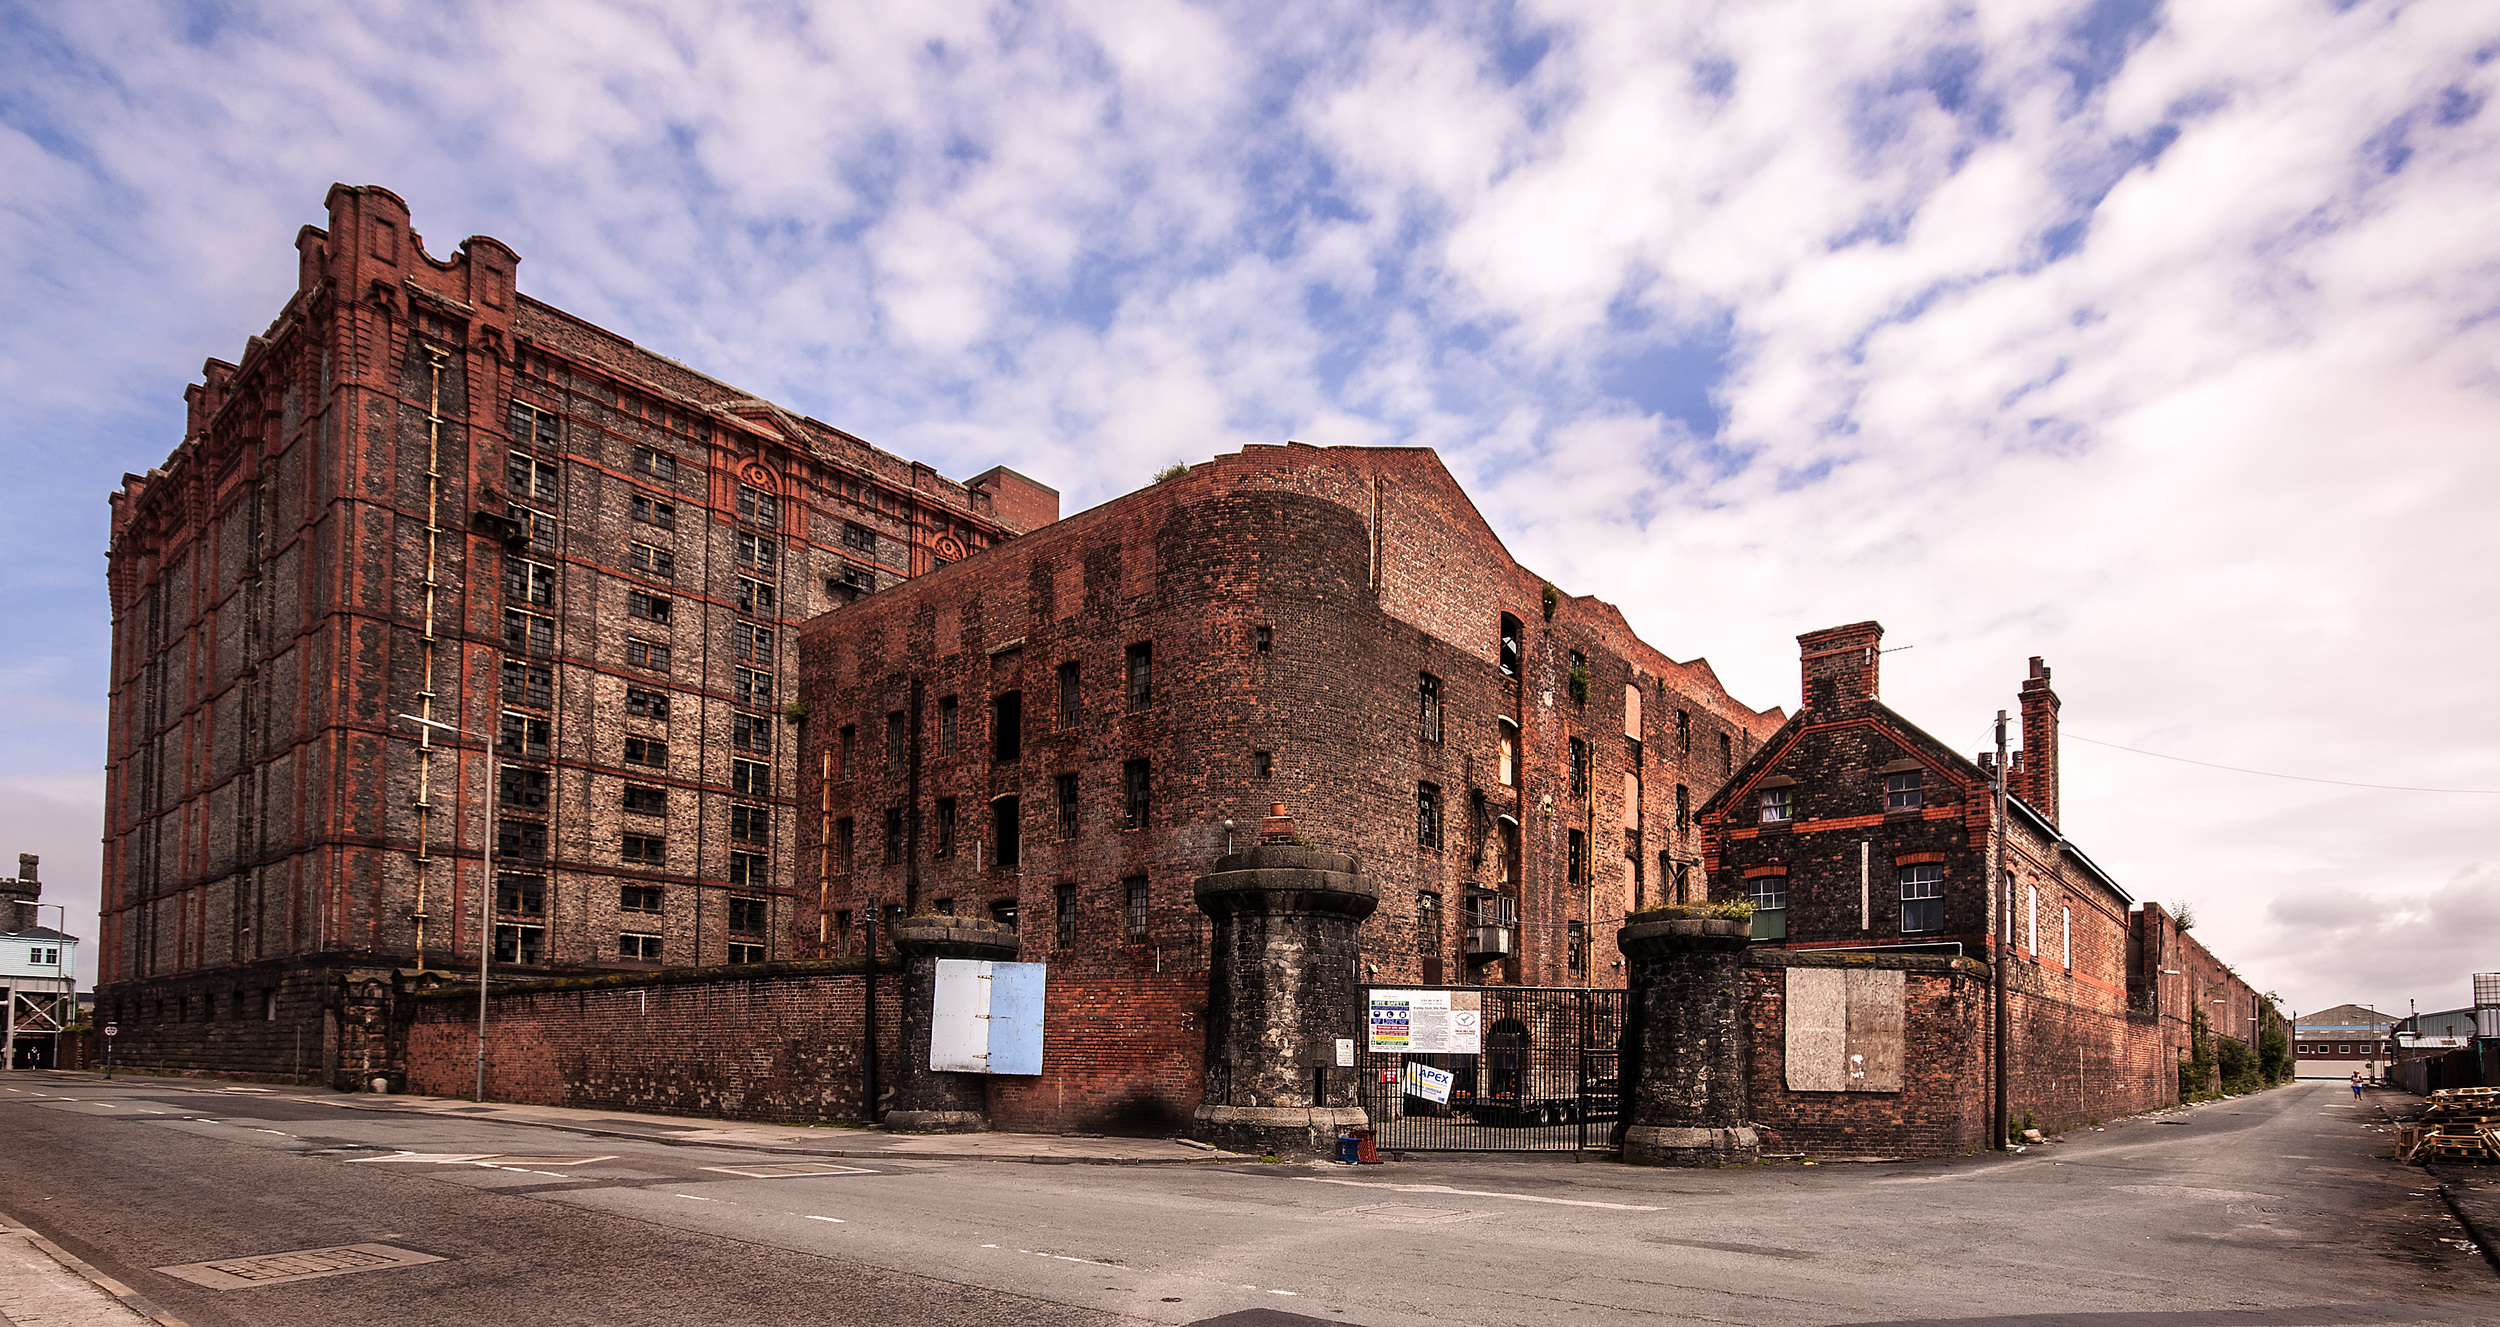 Developers are requesting permission to refurbish Stanley Dock's South Warehouse and create 254 apartments within the Grade II listed site